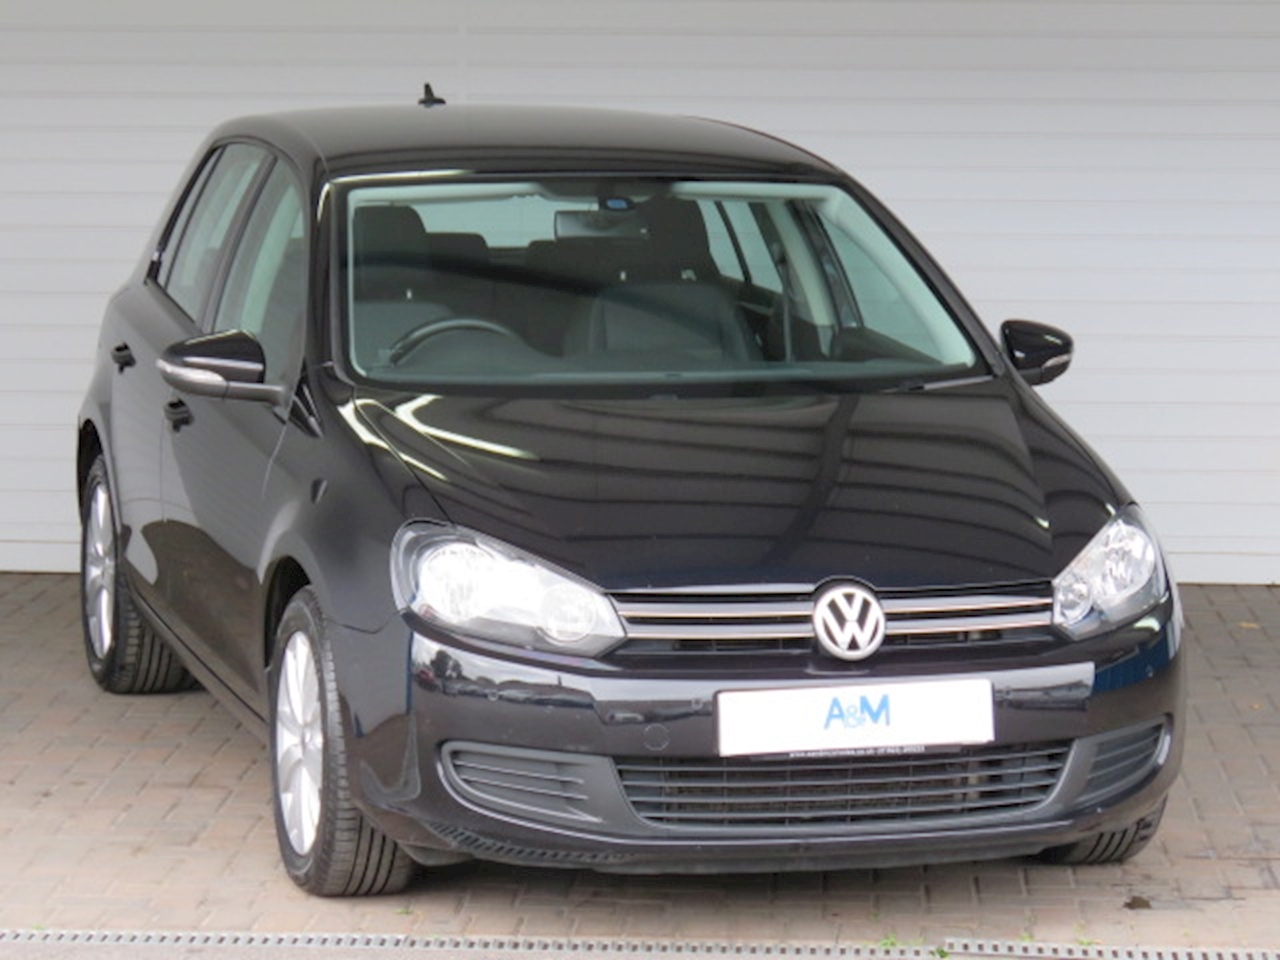 Volkswagen Golf Match Hatchback 2.0 Manual Diesel